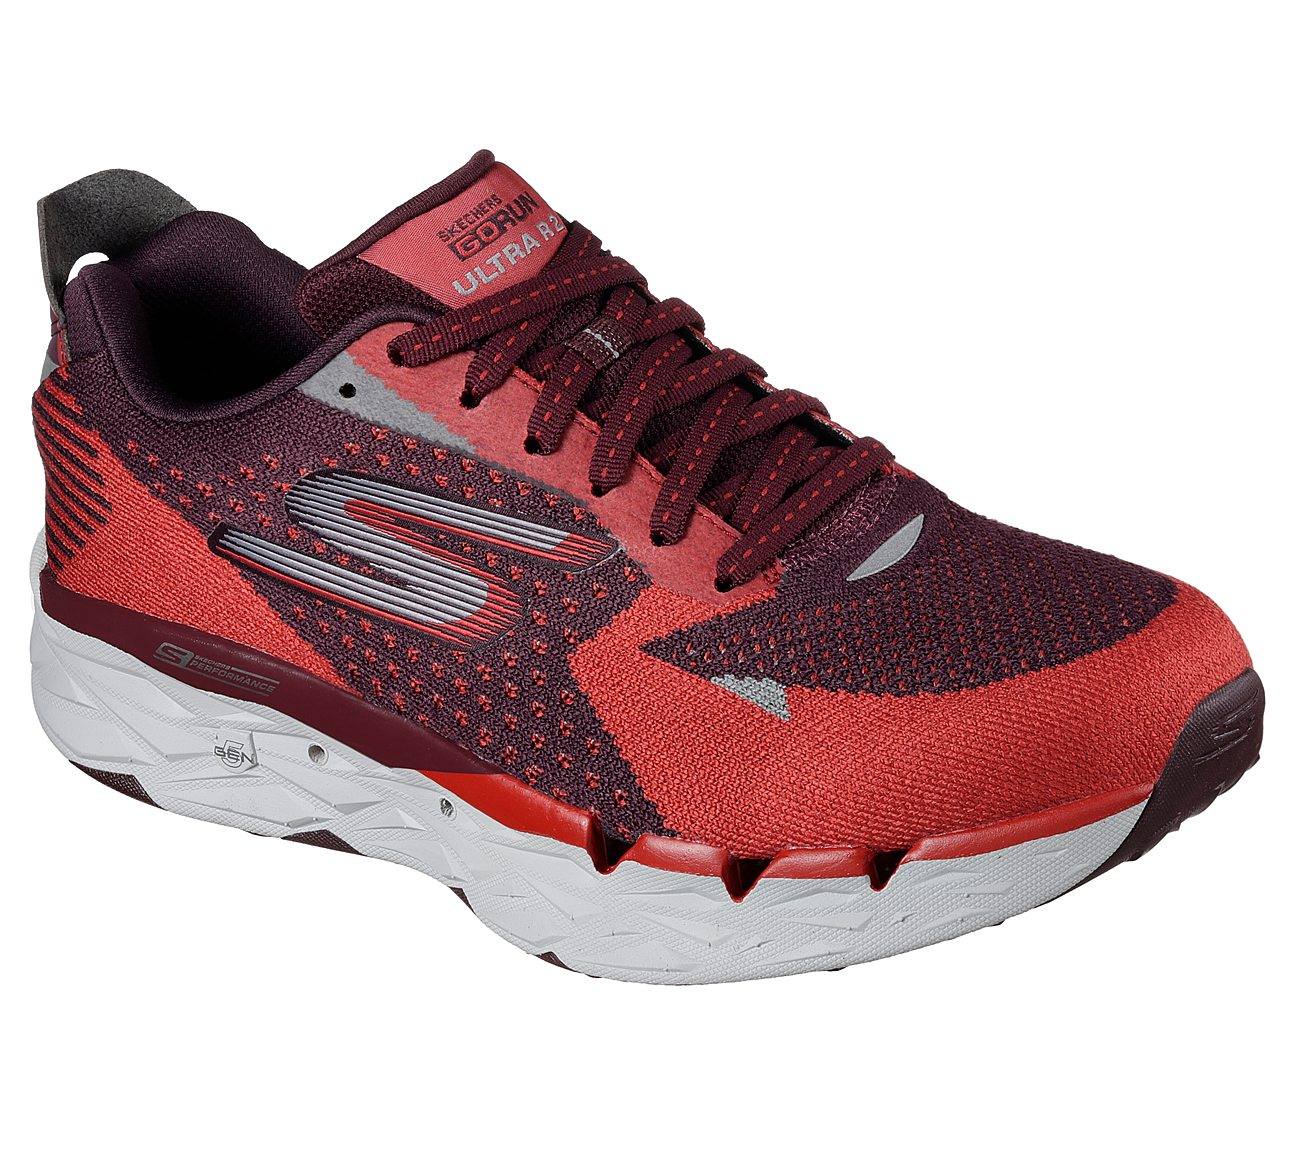 cd1a122079c Buy SKECHERS Skechers GOrun Ultra Road 2 Skechers Performance Shoes ...